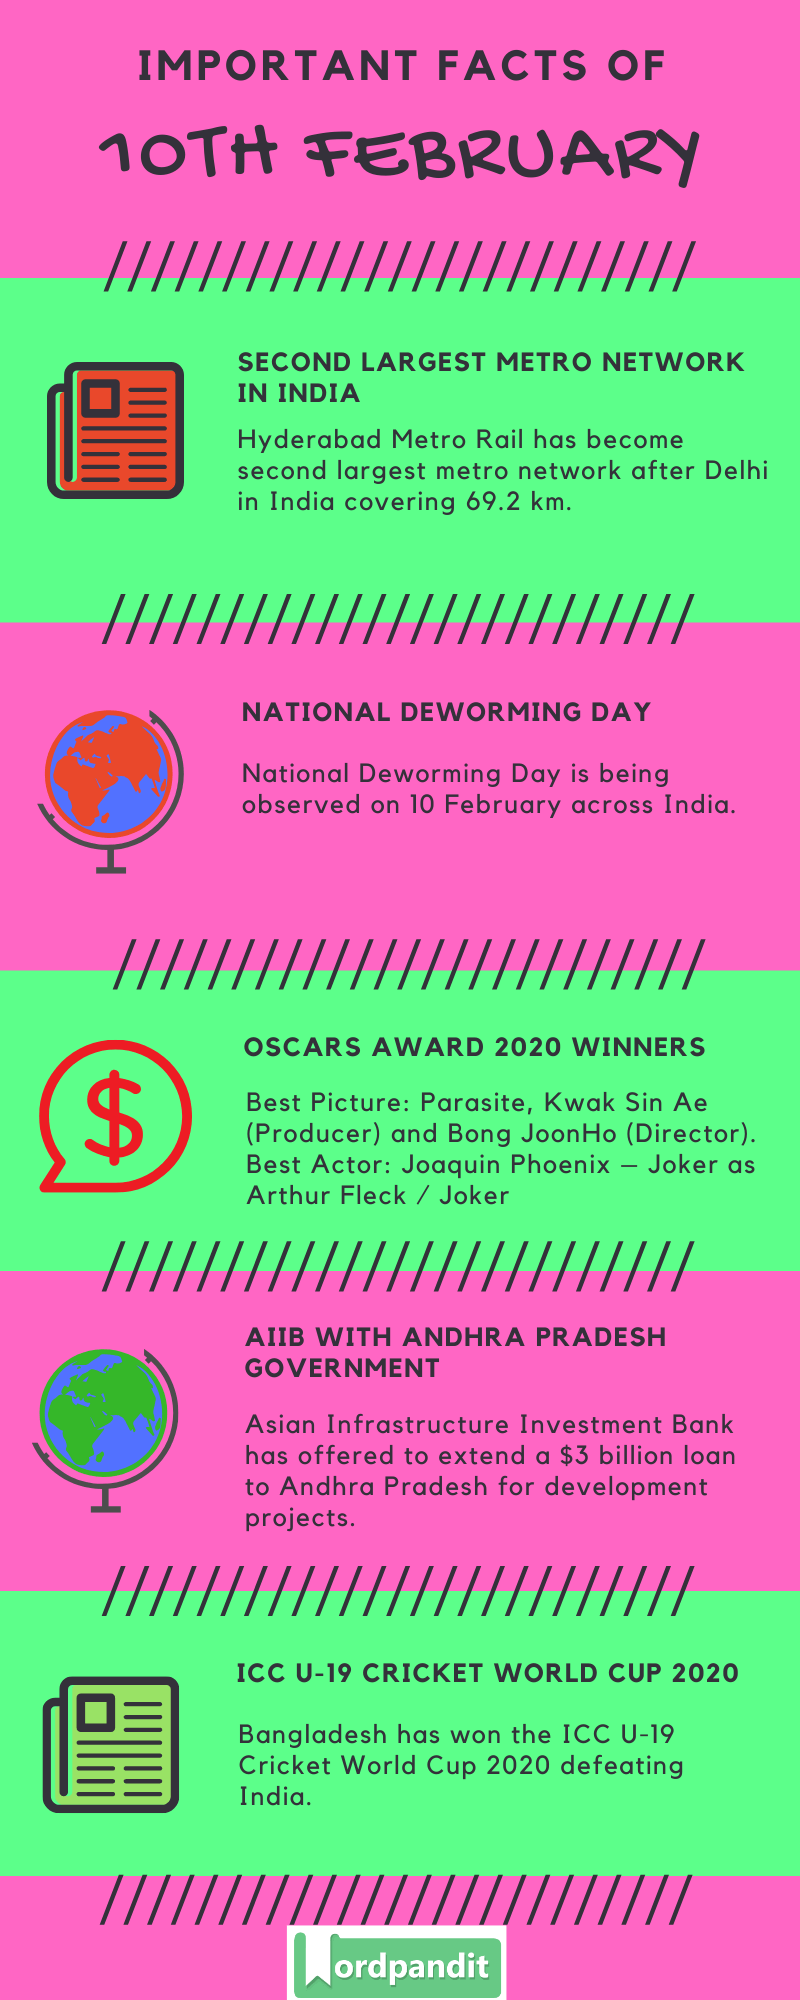 Daily Current Affairs 10 February 2020 Current Affairs Quiz 10 February 2020 Current Affairs Infographic